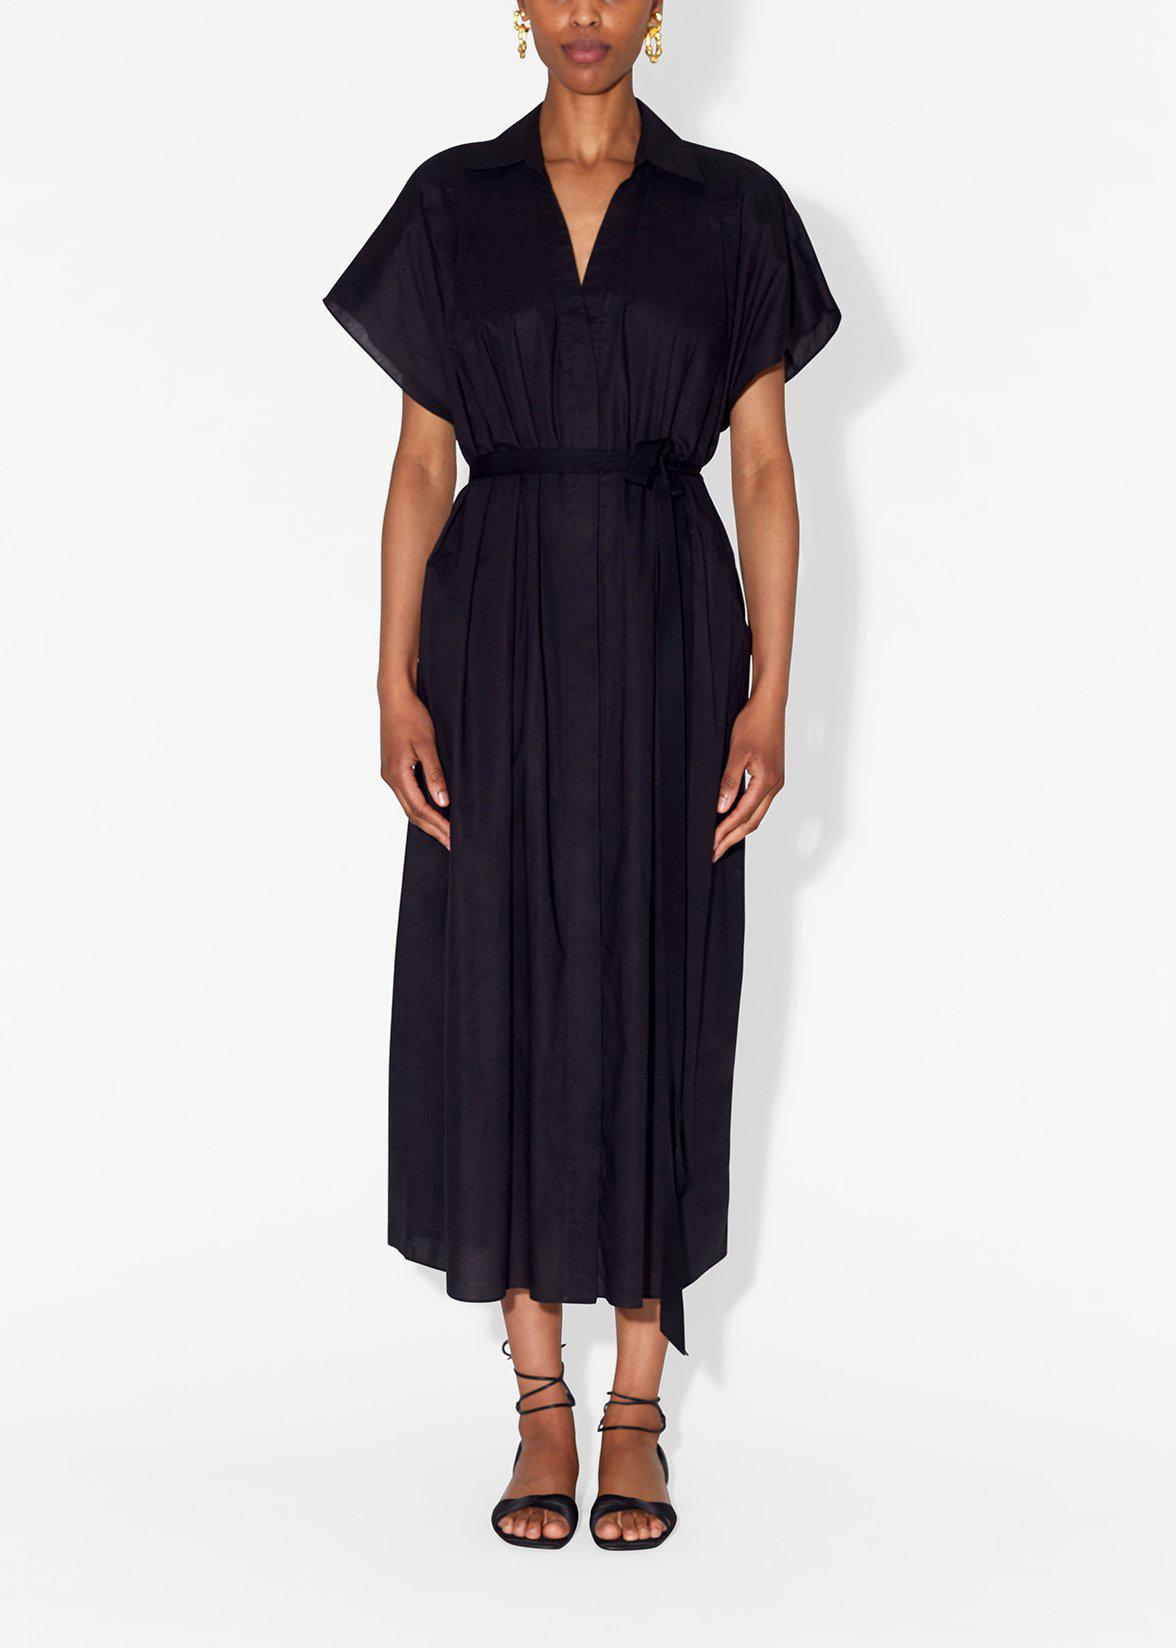 SHIRT DRESS IN COTTON VOILE 2